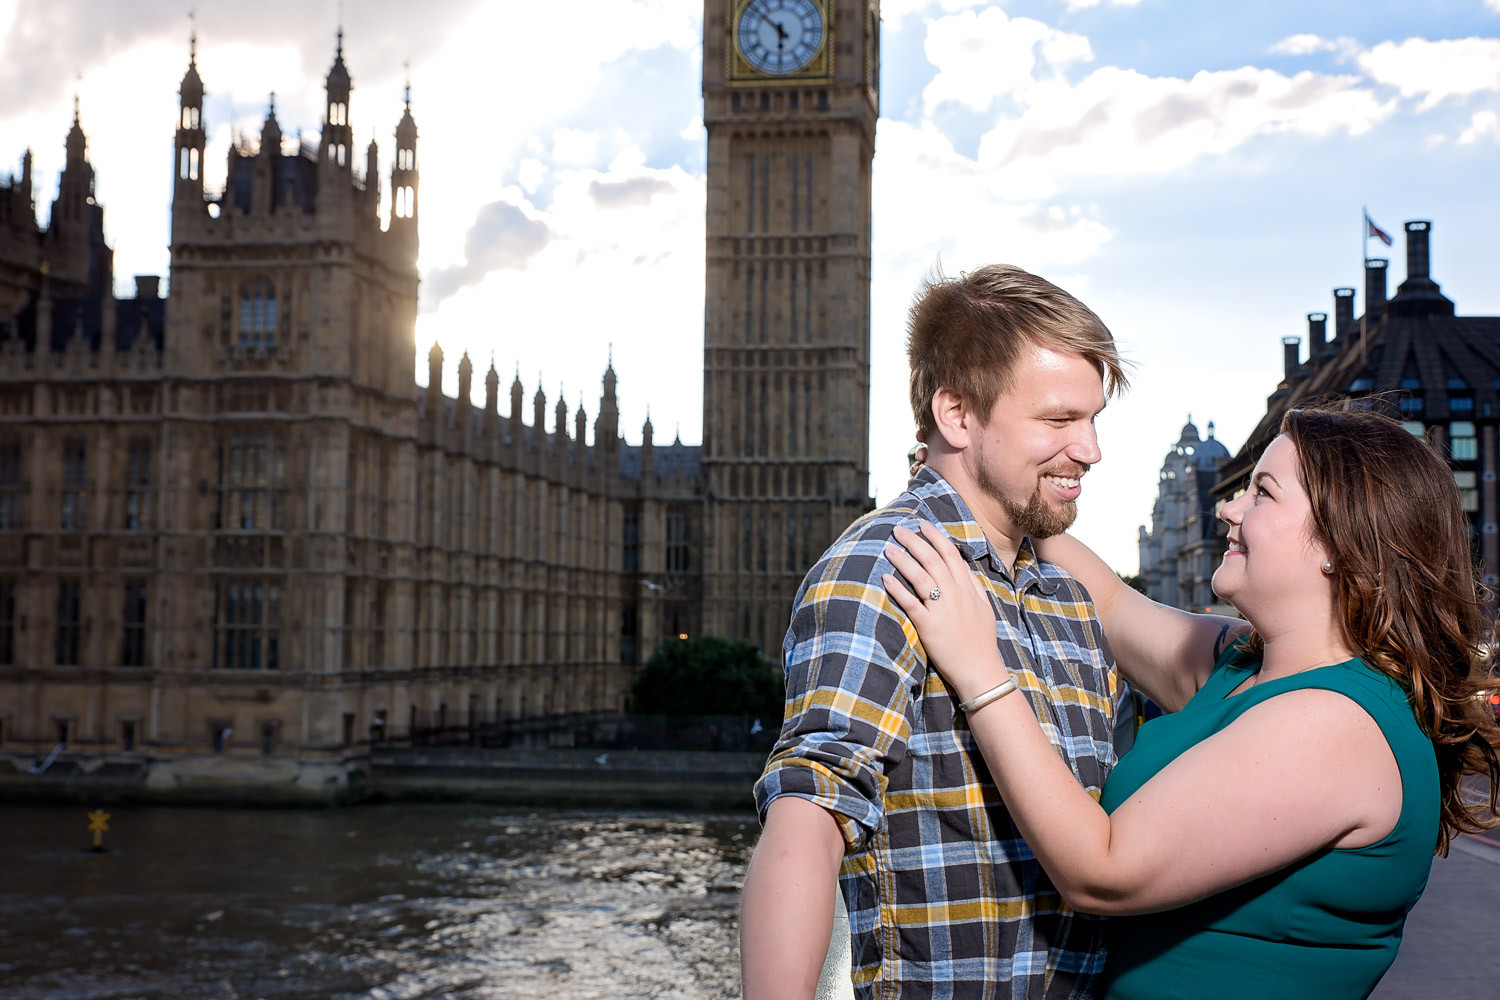 janice-peter-westminster-the-river-thames-london-engagement-1